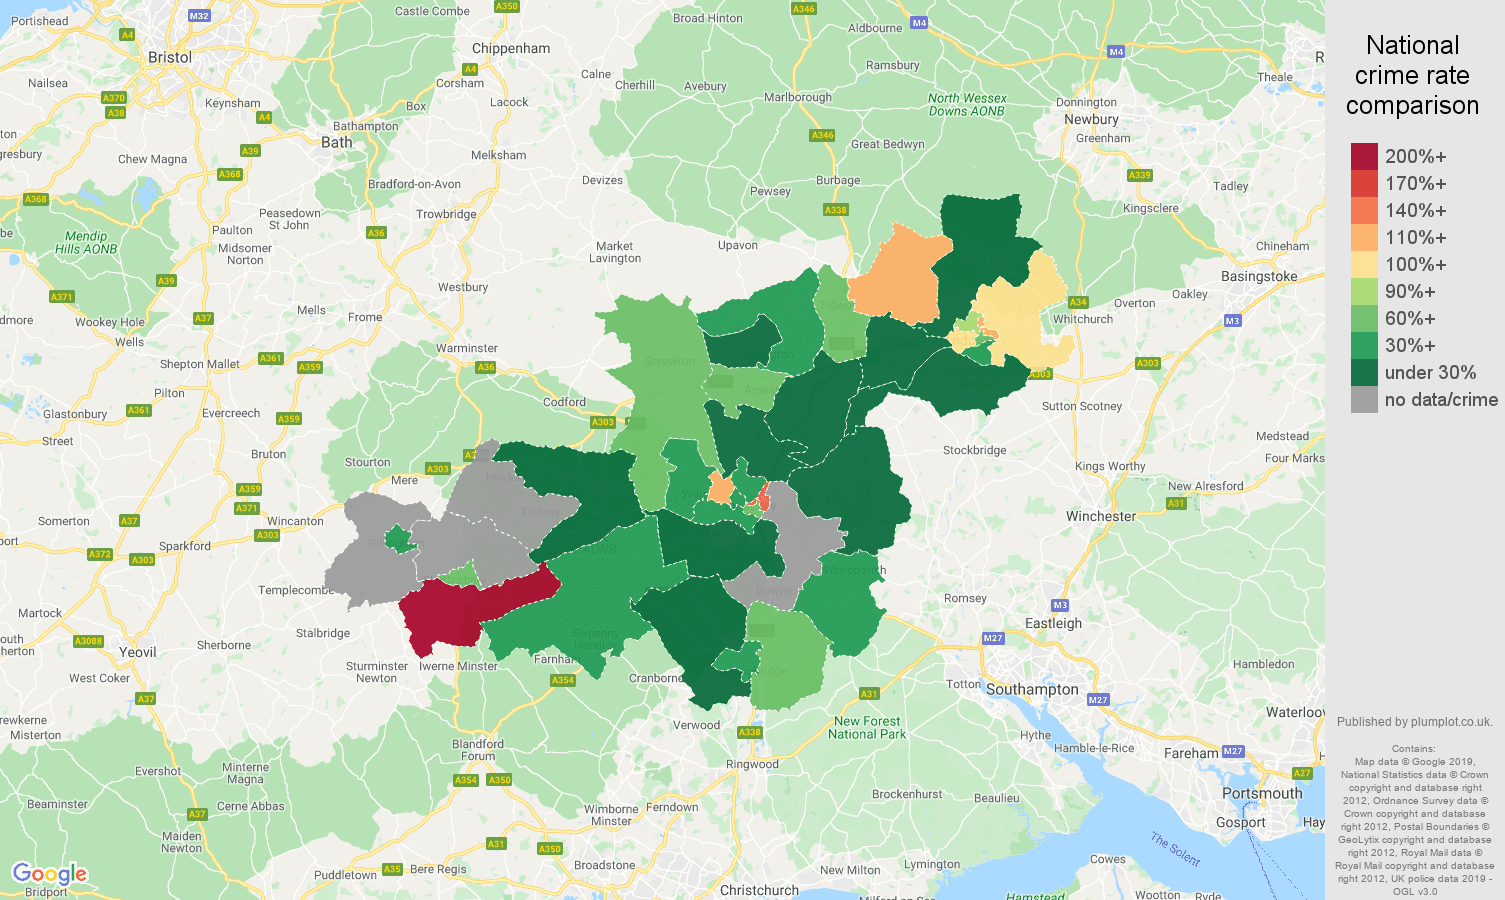 Salisbury other crime rate comparison map